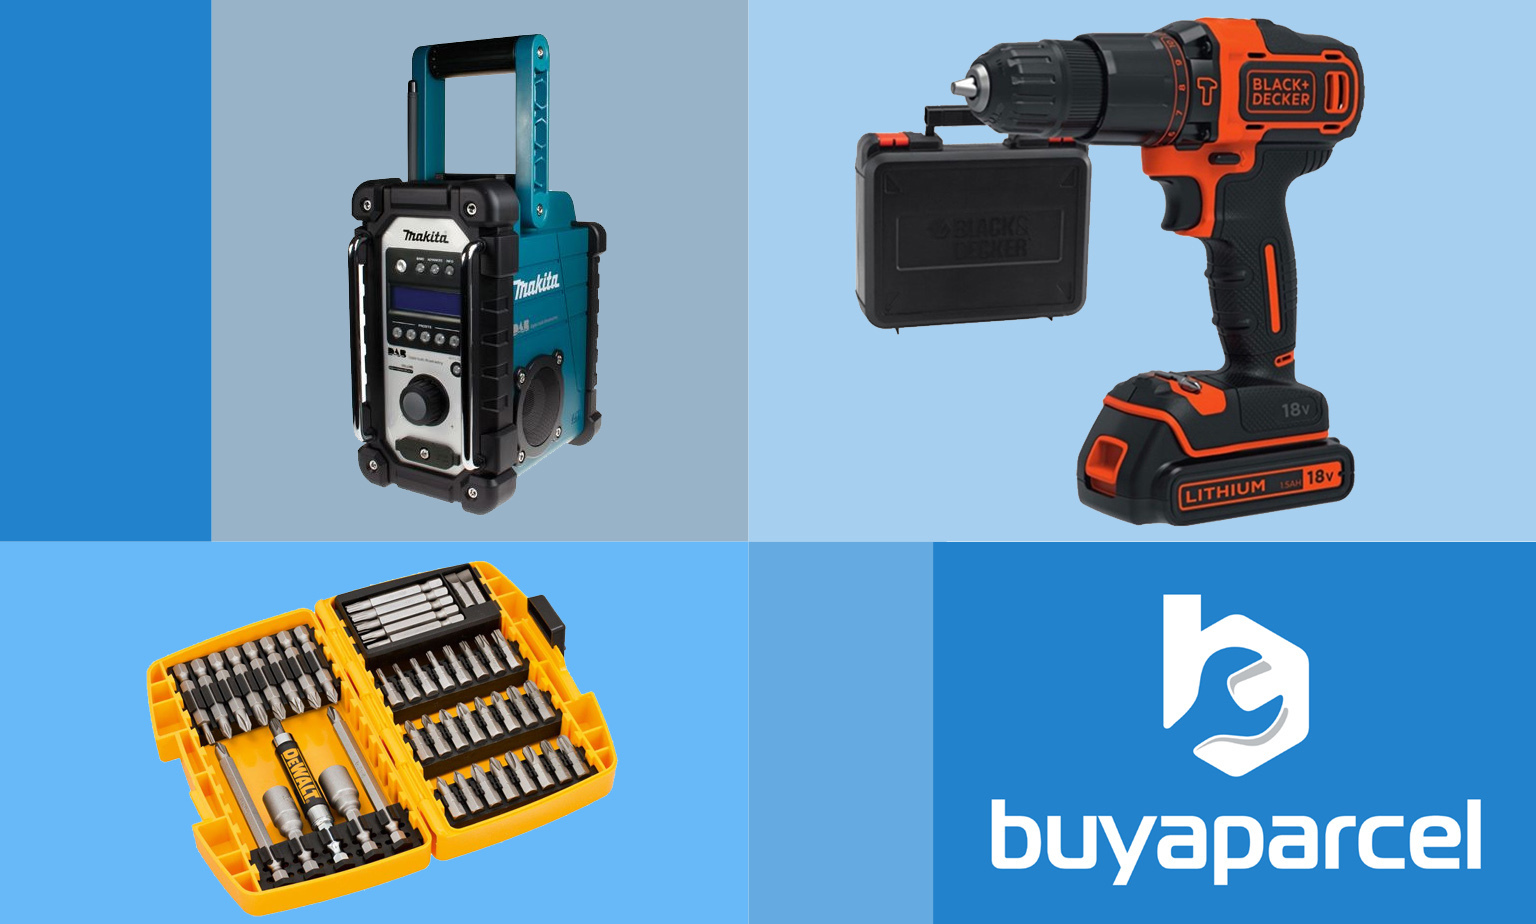 Shop Our Great Selection of Branded Tools